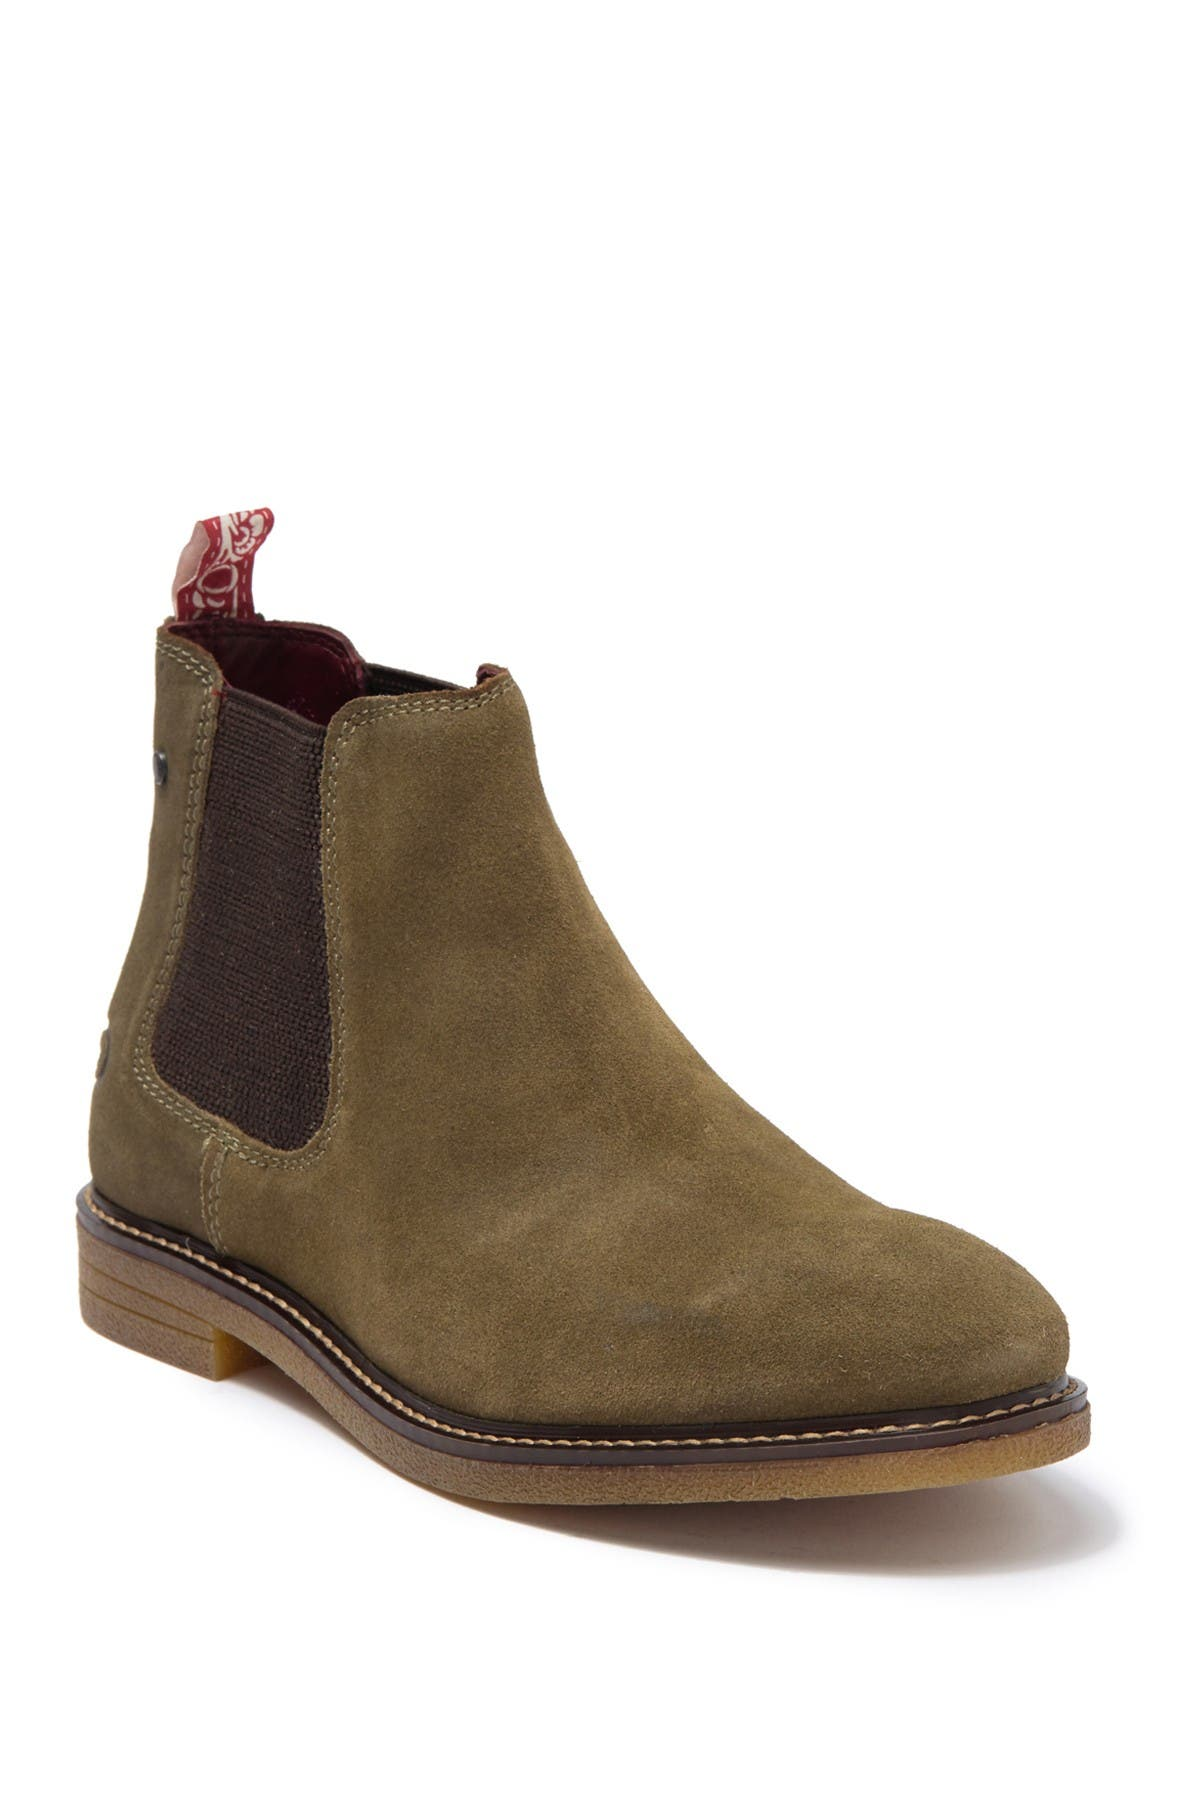 Image of Base London Lawson Suede Chelsea Boot